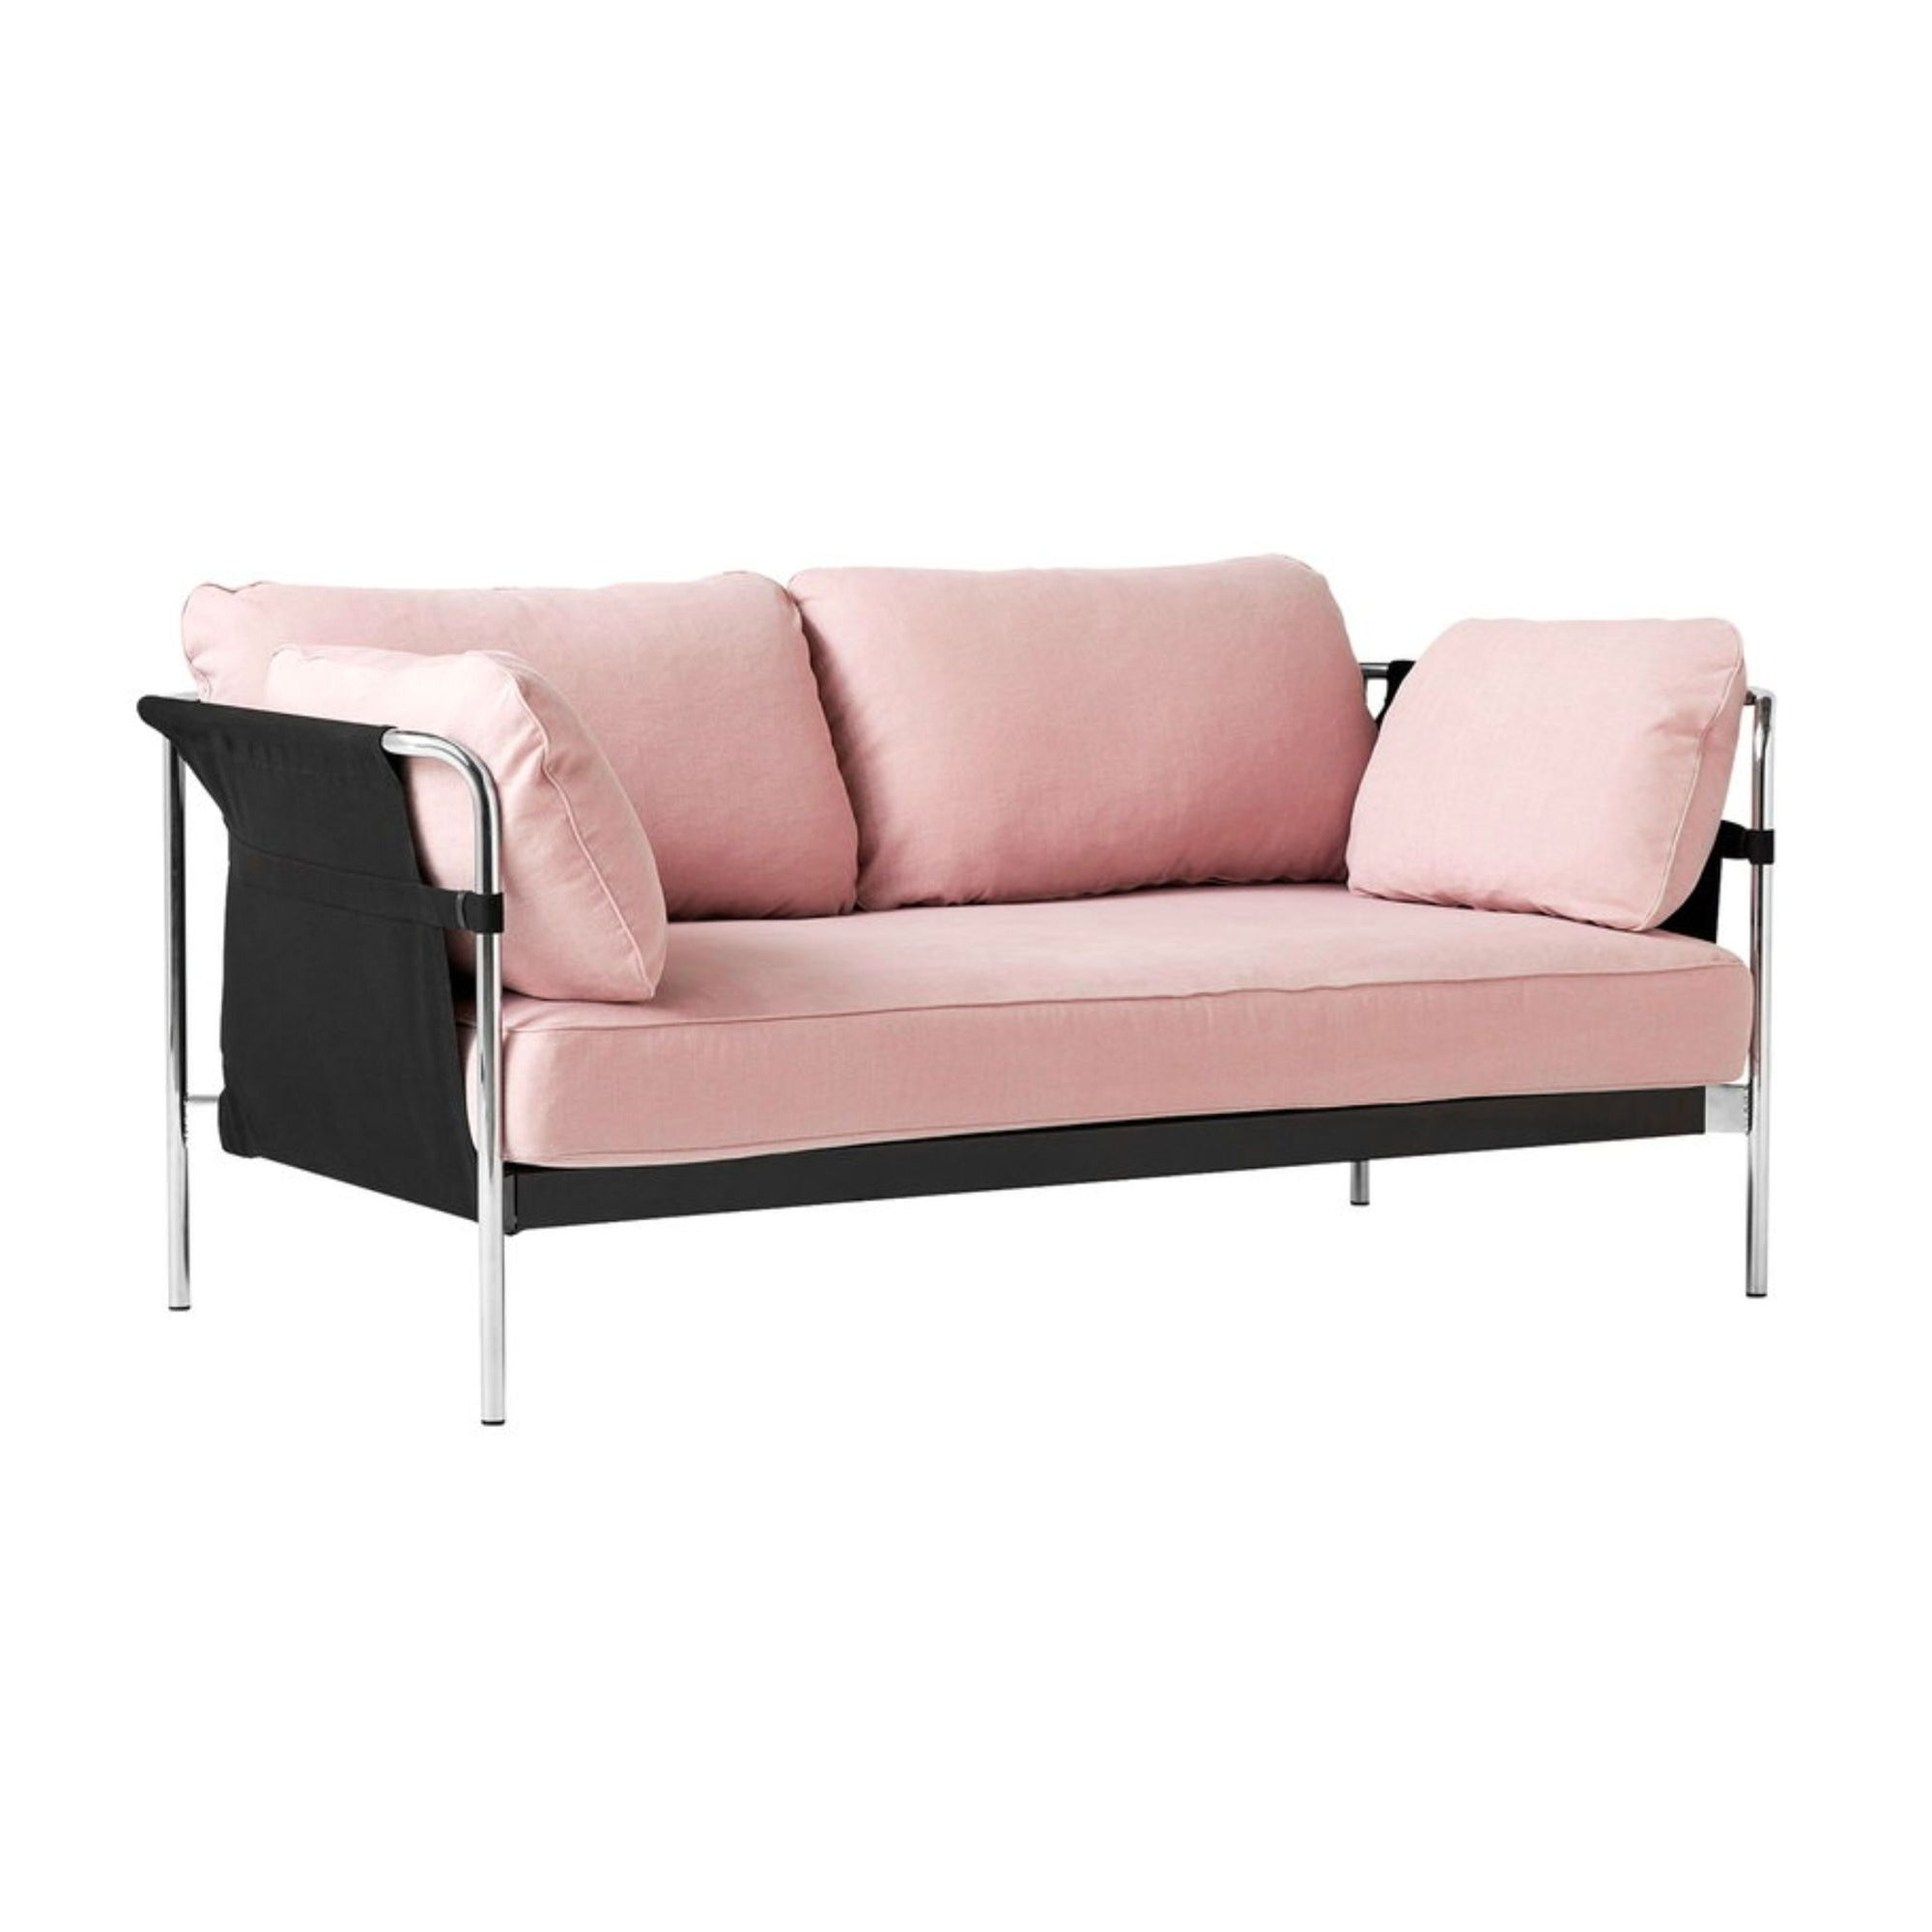 HAY Can 2-Seater Sofa 2.0, chrome - black - linara415